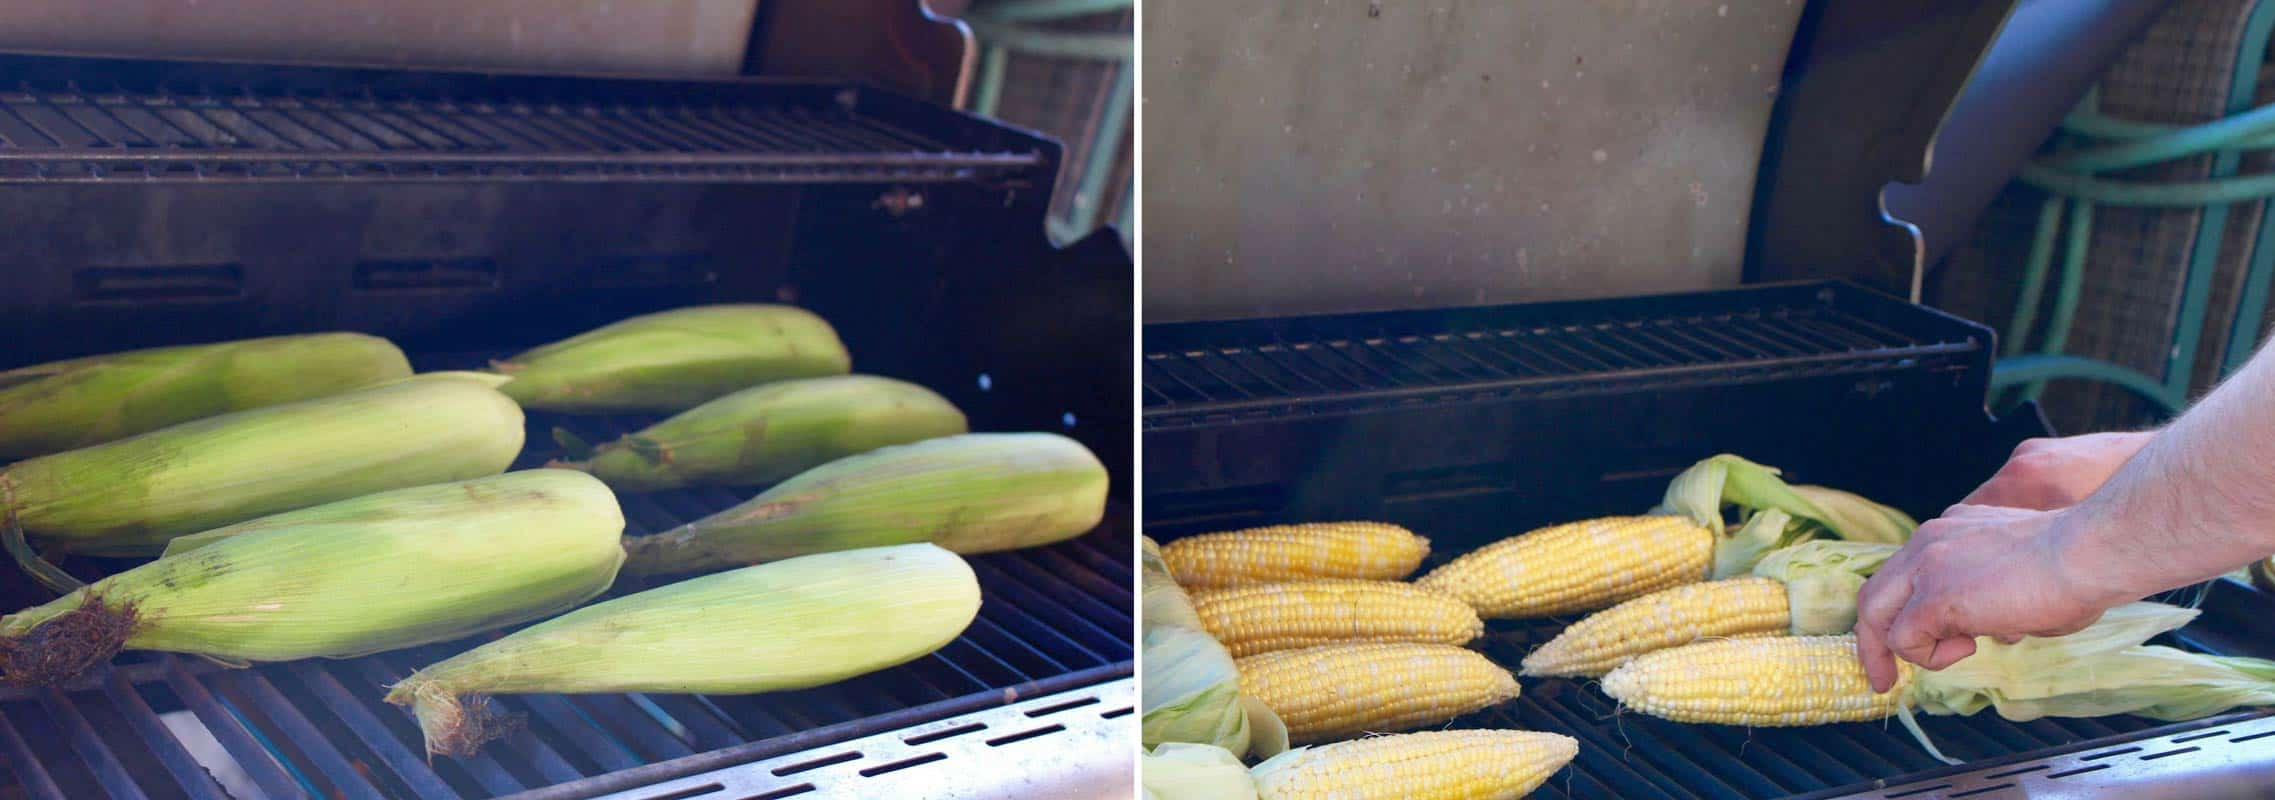 Husked and unhusked corn on grill.